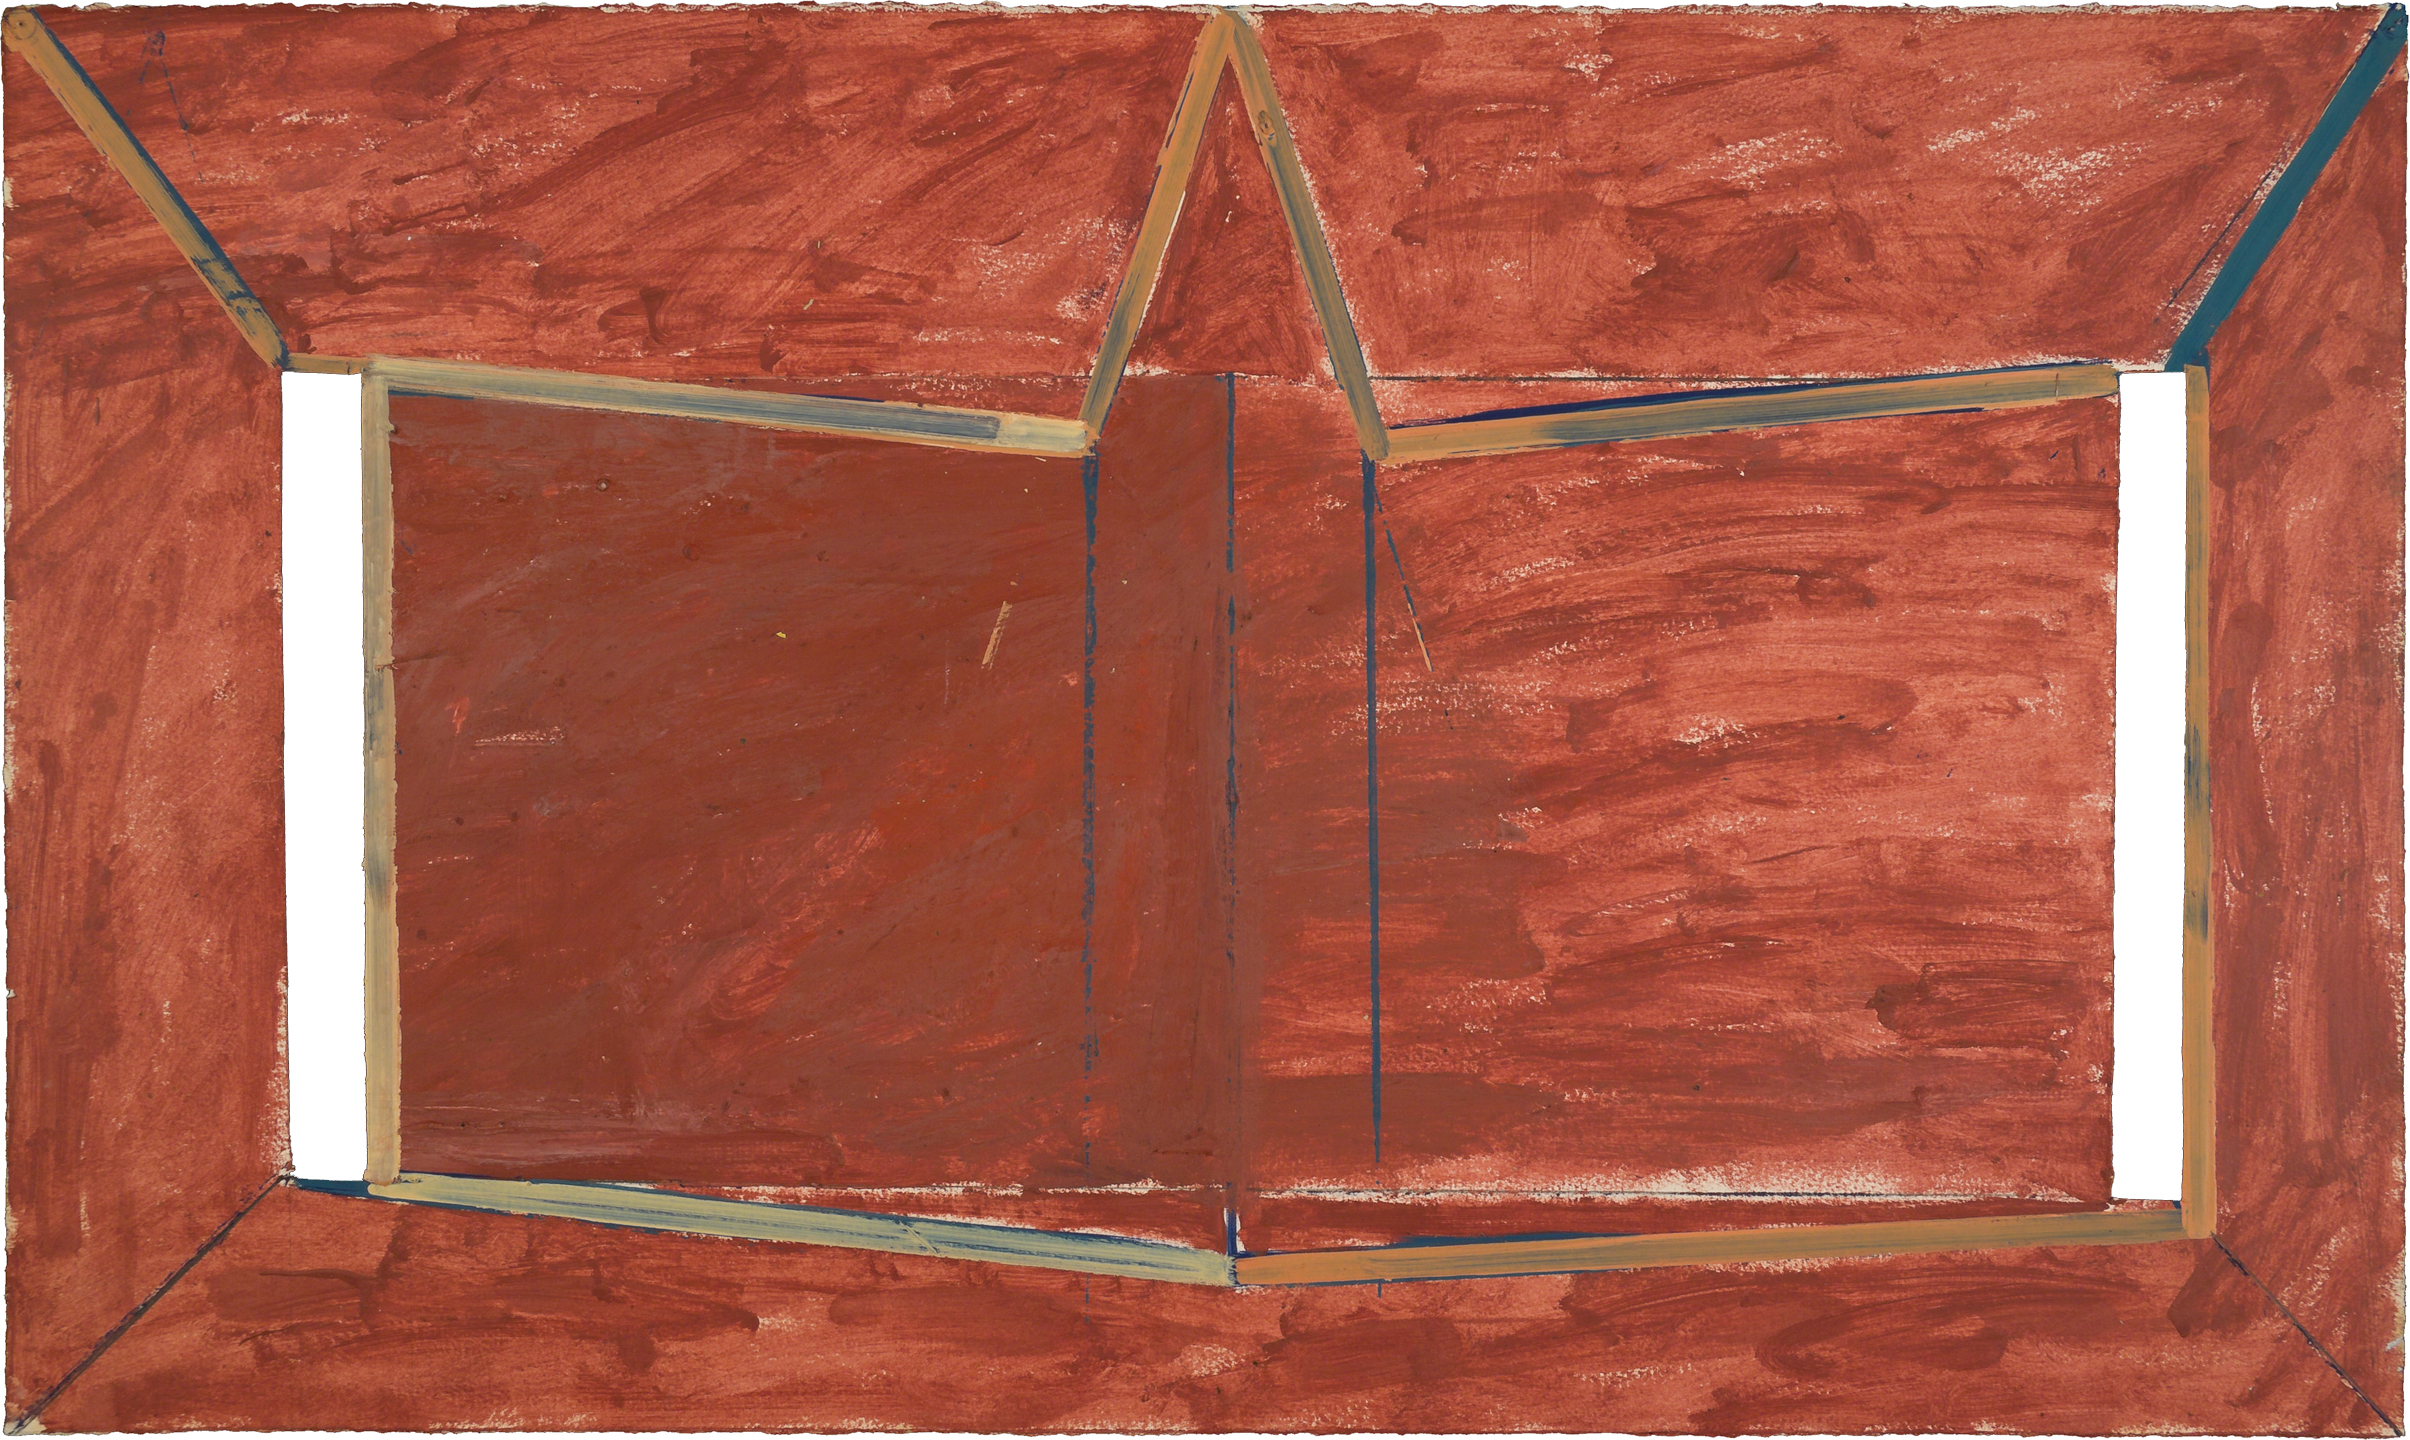 Untitled, 1975, oil and wax on paper, 22 x 30 in.